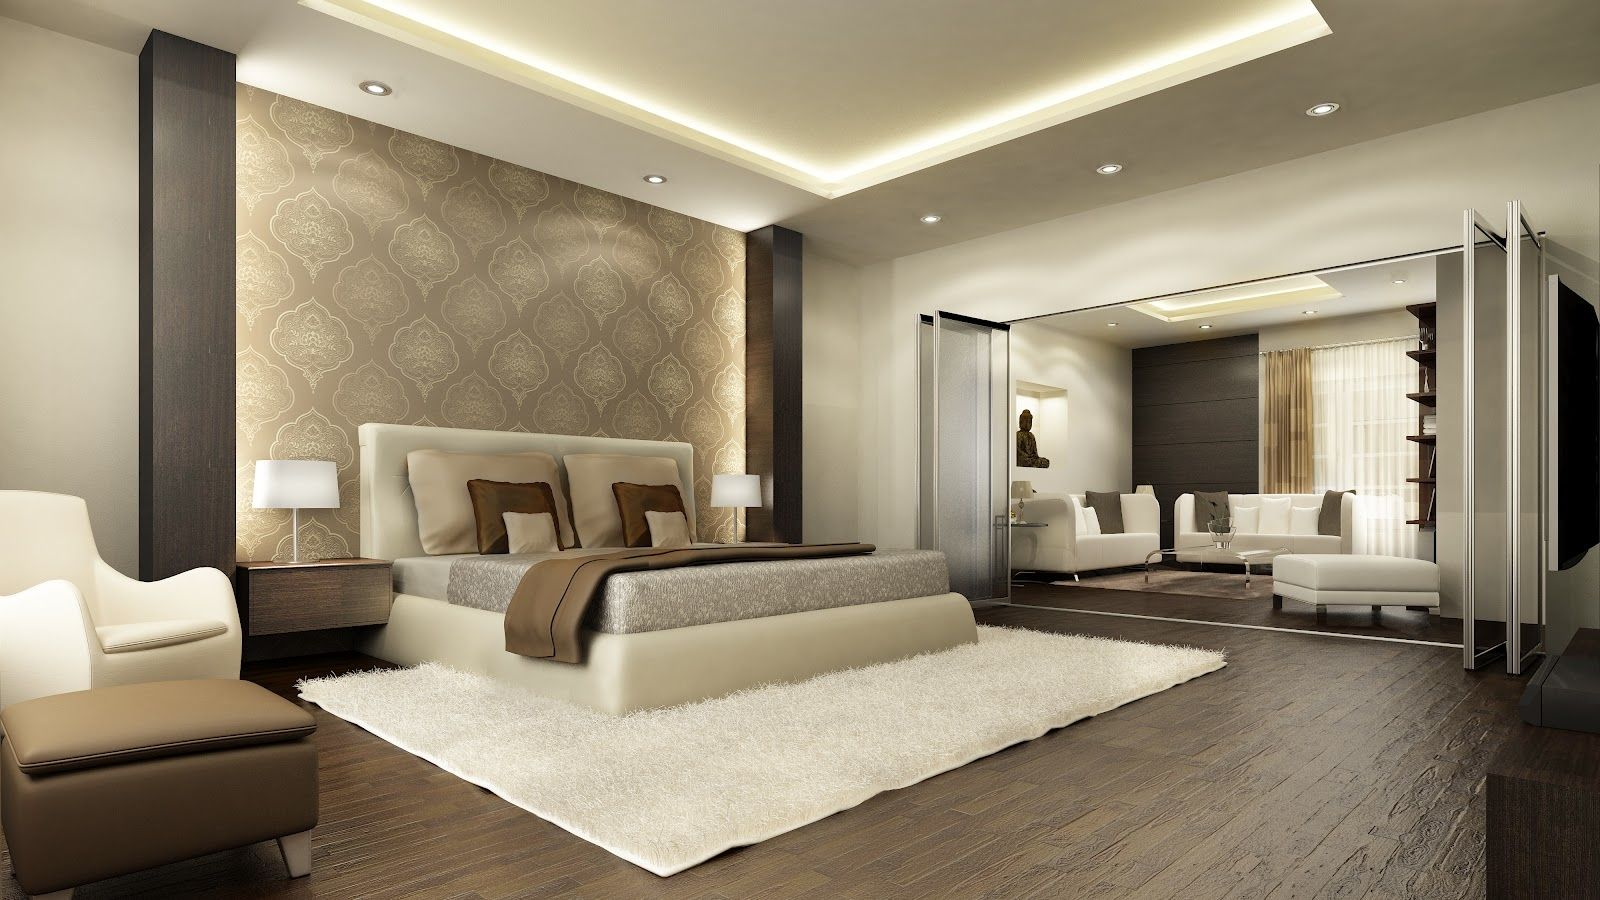 Bedroom Interior Sophisticated Penthouse Master Bedroom Interior